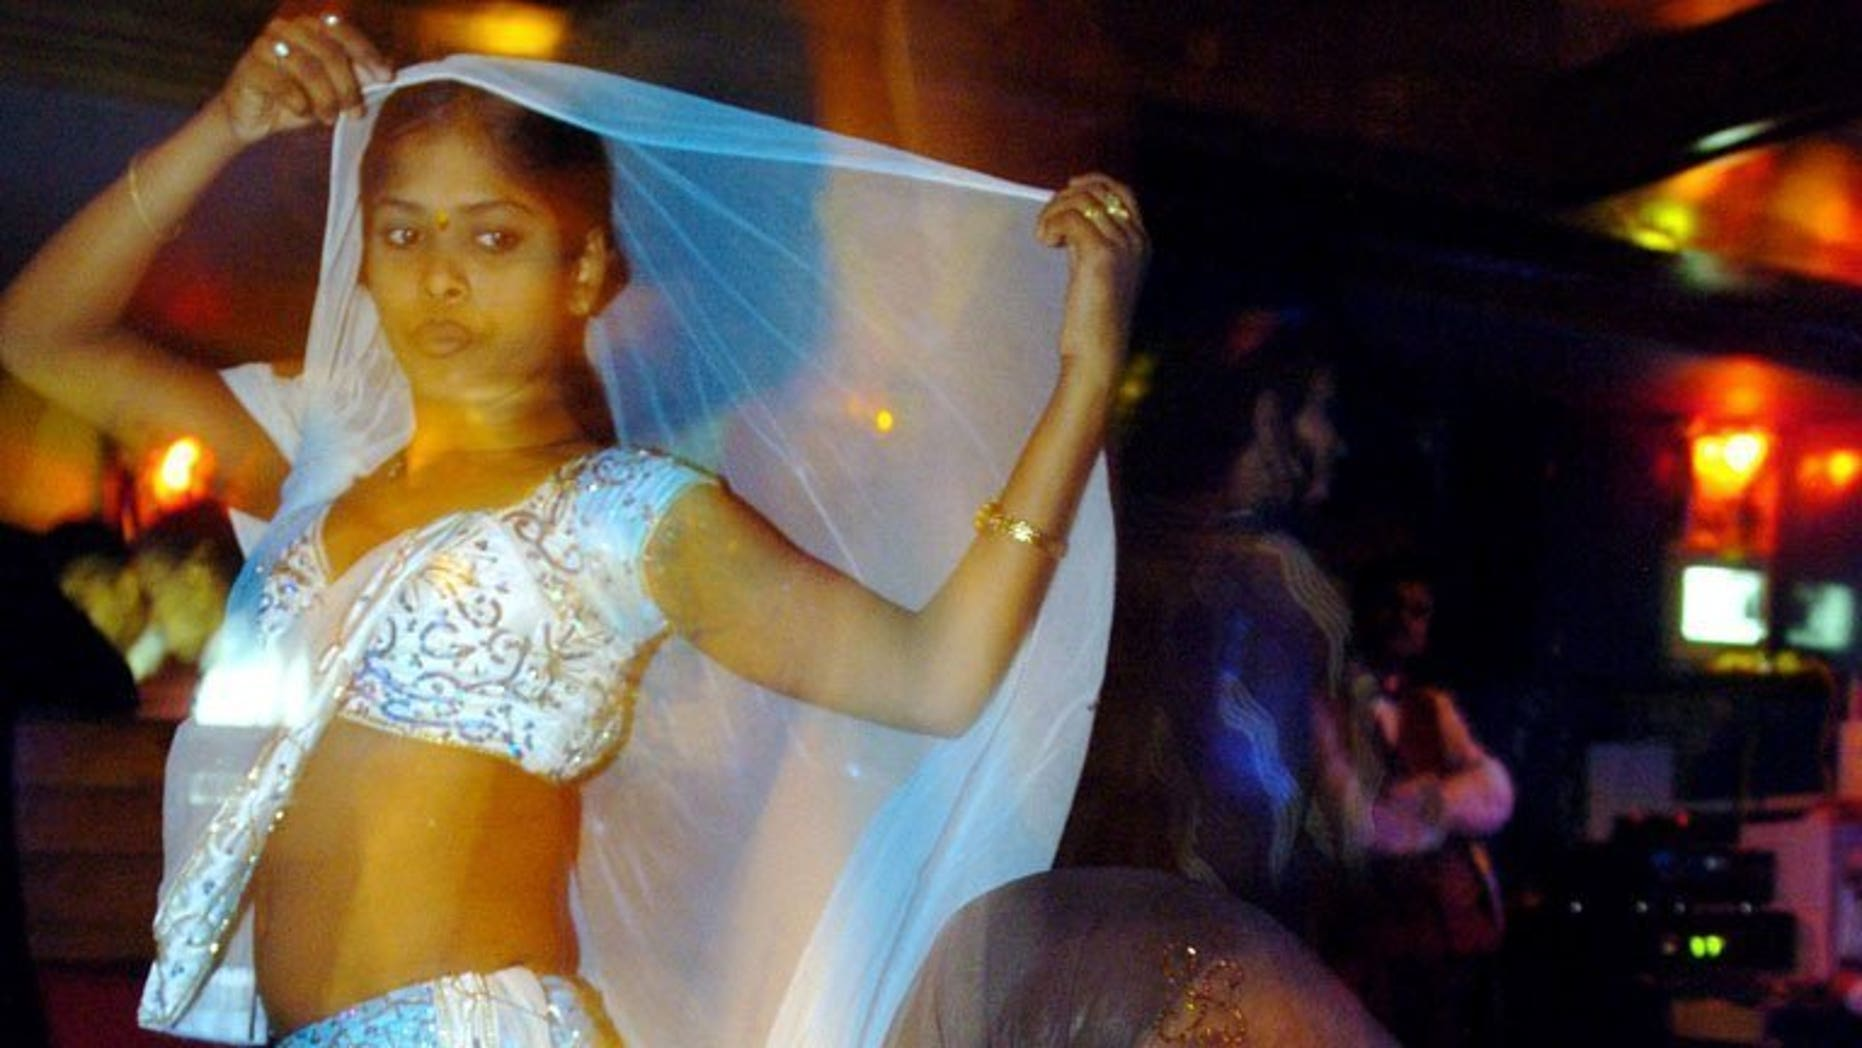 File picture shows bar dancers performing during their evening show in Mumbai, on May 6, 2005. India's top court on Tuesday overturned a ban on dance bars in the city of Mumbai, allowing hundreds of premises which employed women to dance and entertain customers to reopen.